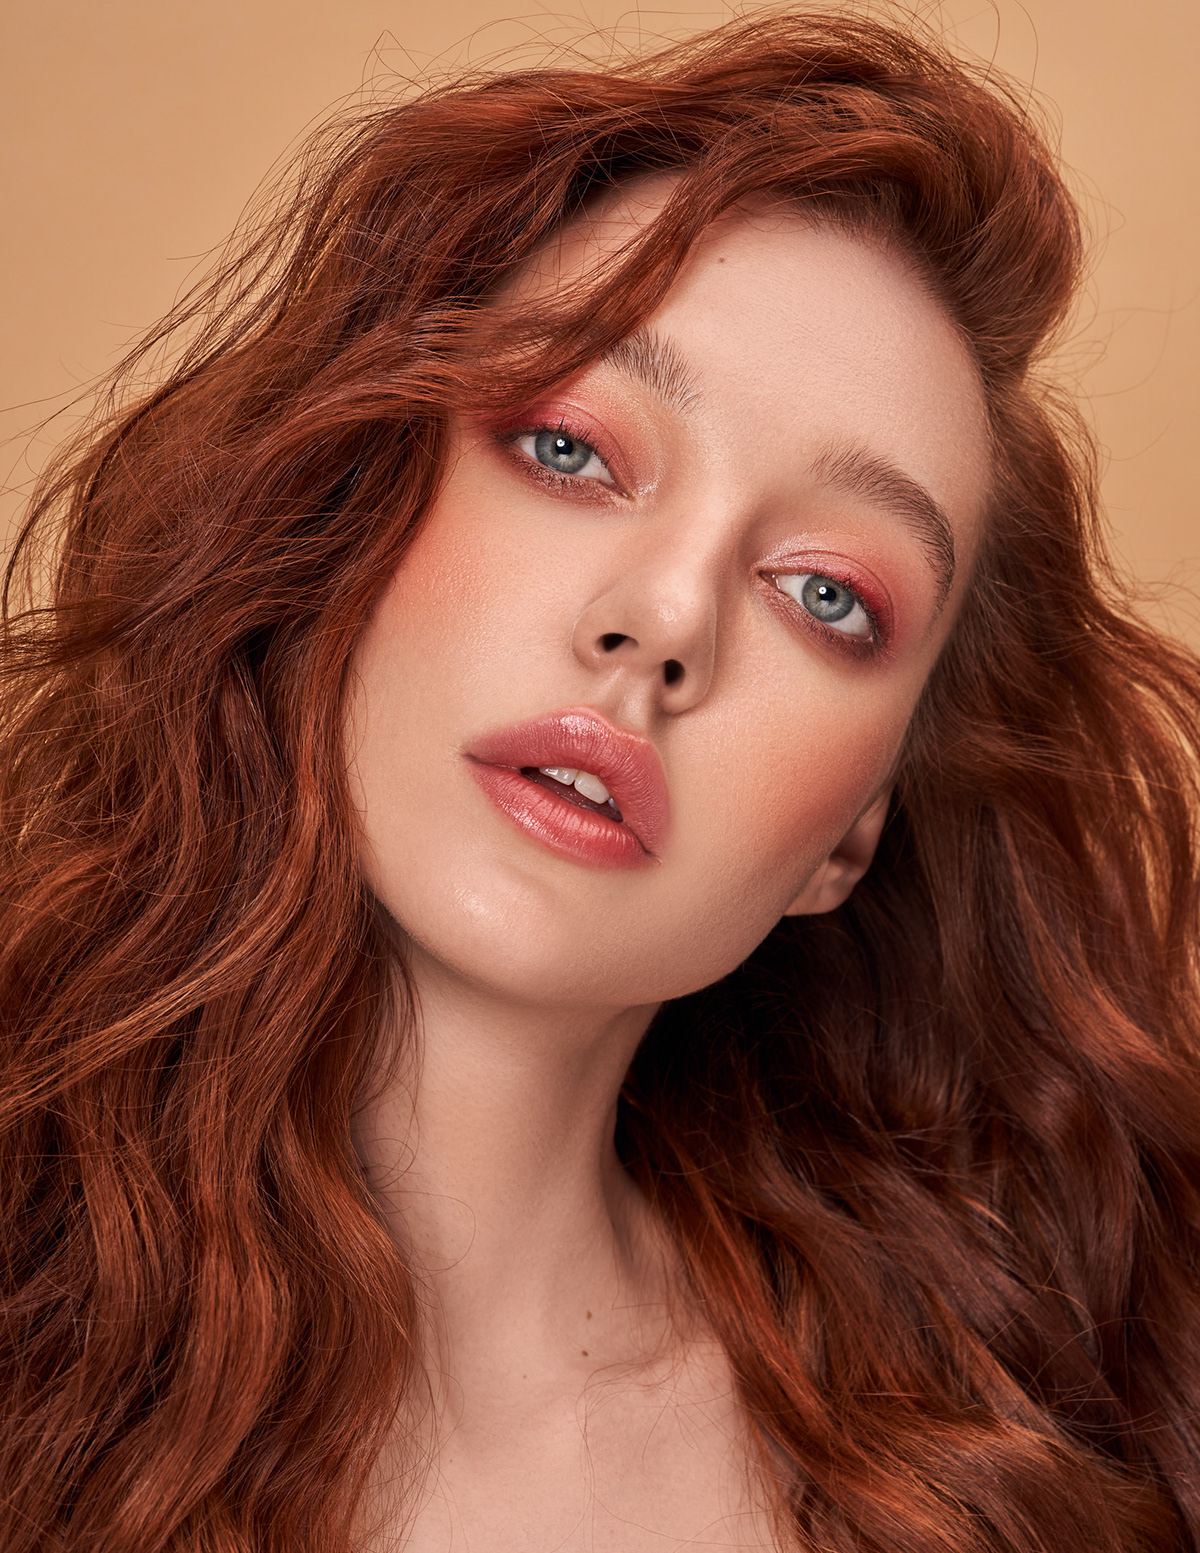 beauty editorial beauty photography capture one high end retouch licensing liubov pogorela sonyalpha